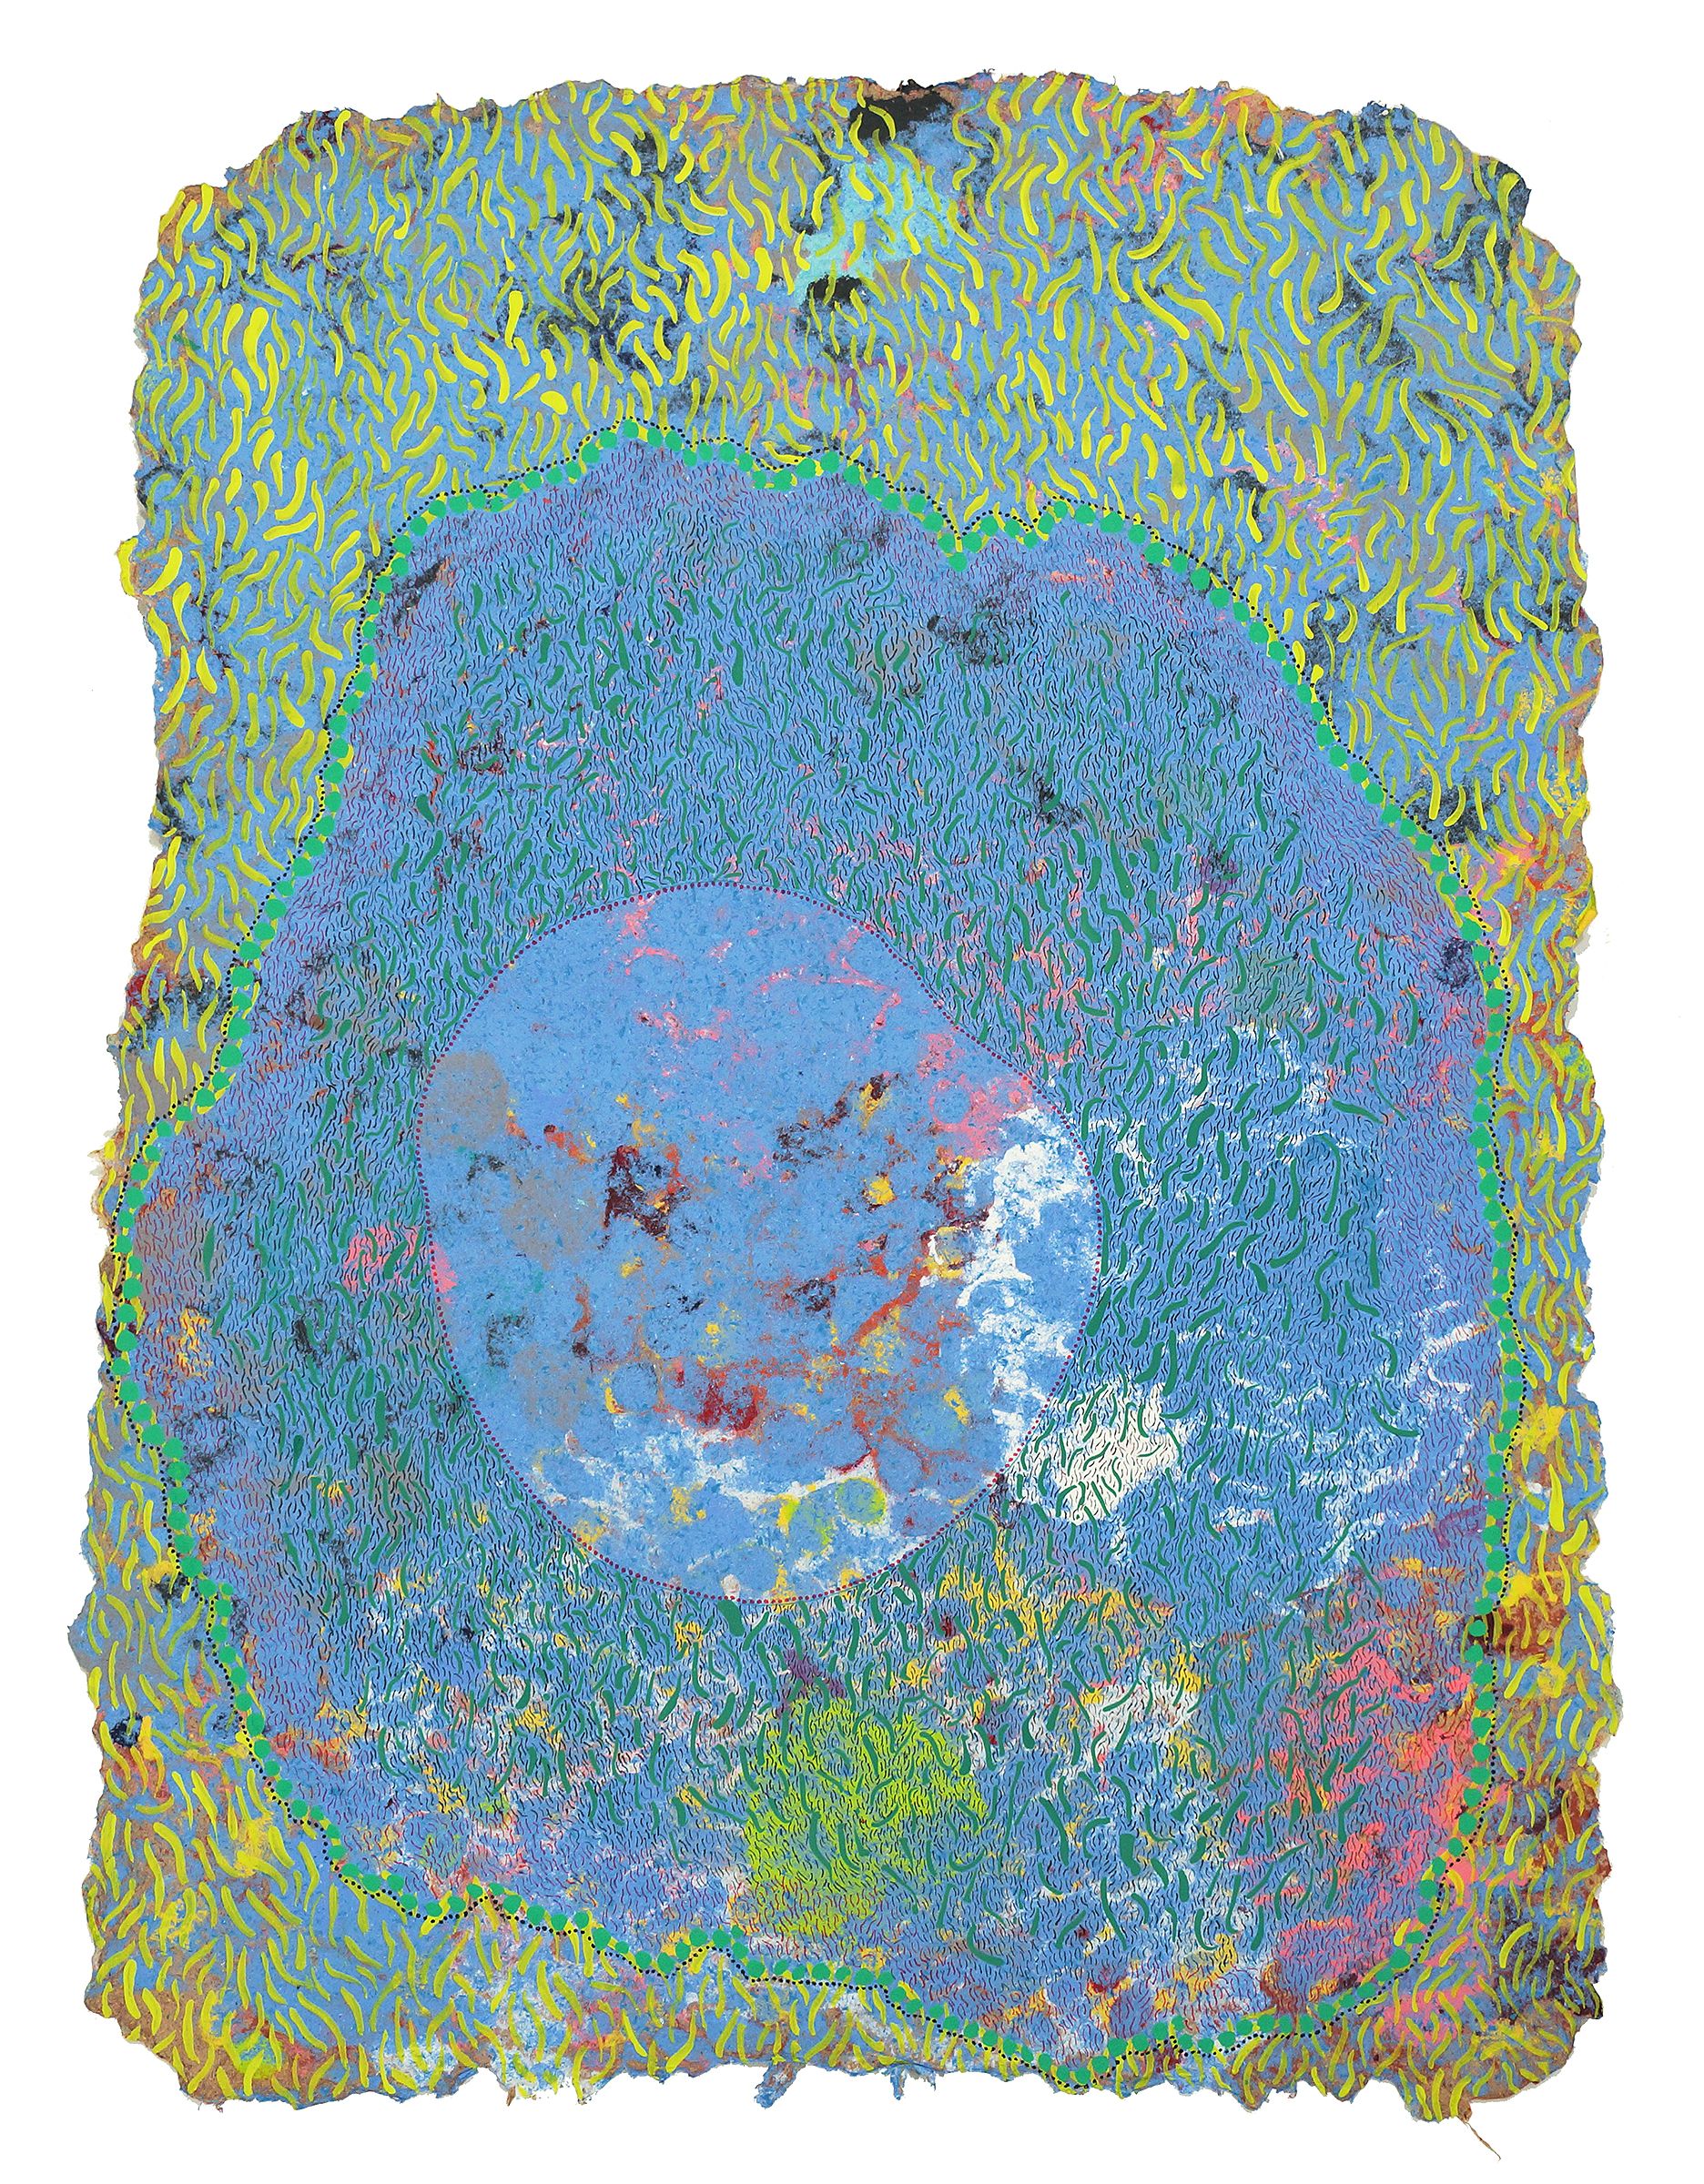 CHAD HAYWARD  Multitude  Acrylic, pen, and pigmented cotton pulp on handmade paper, 22 x 30 inches